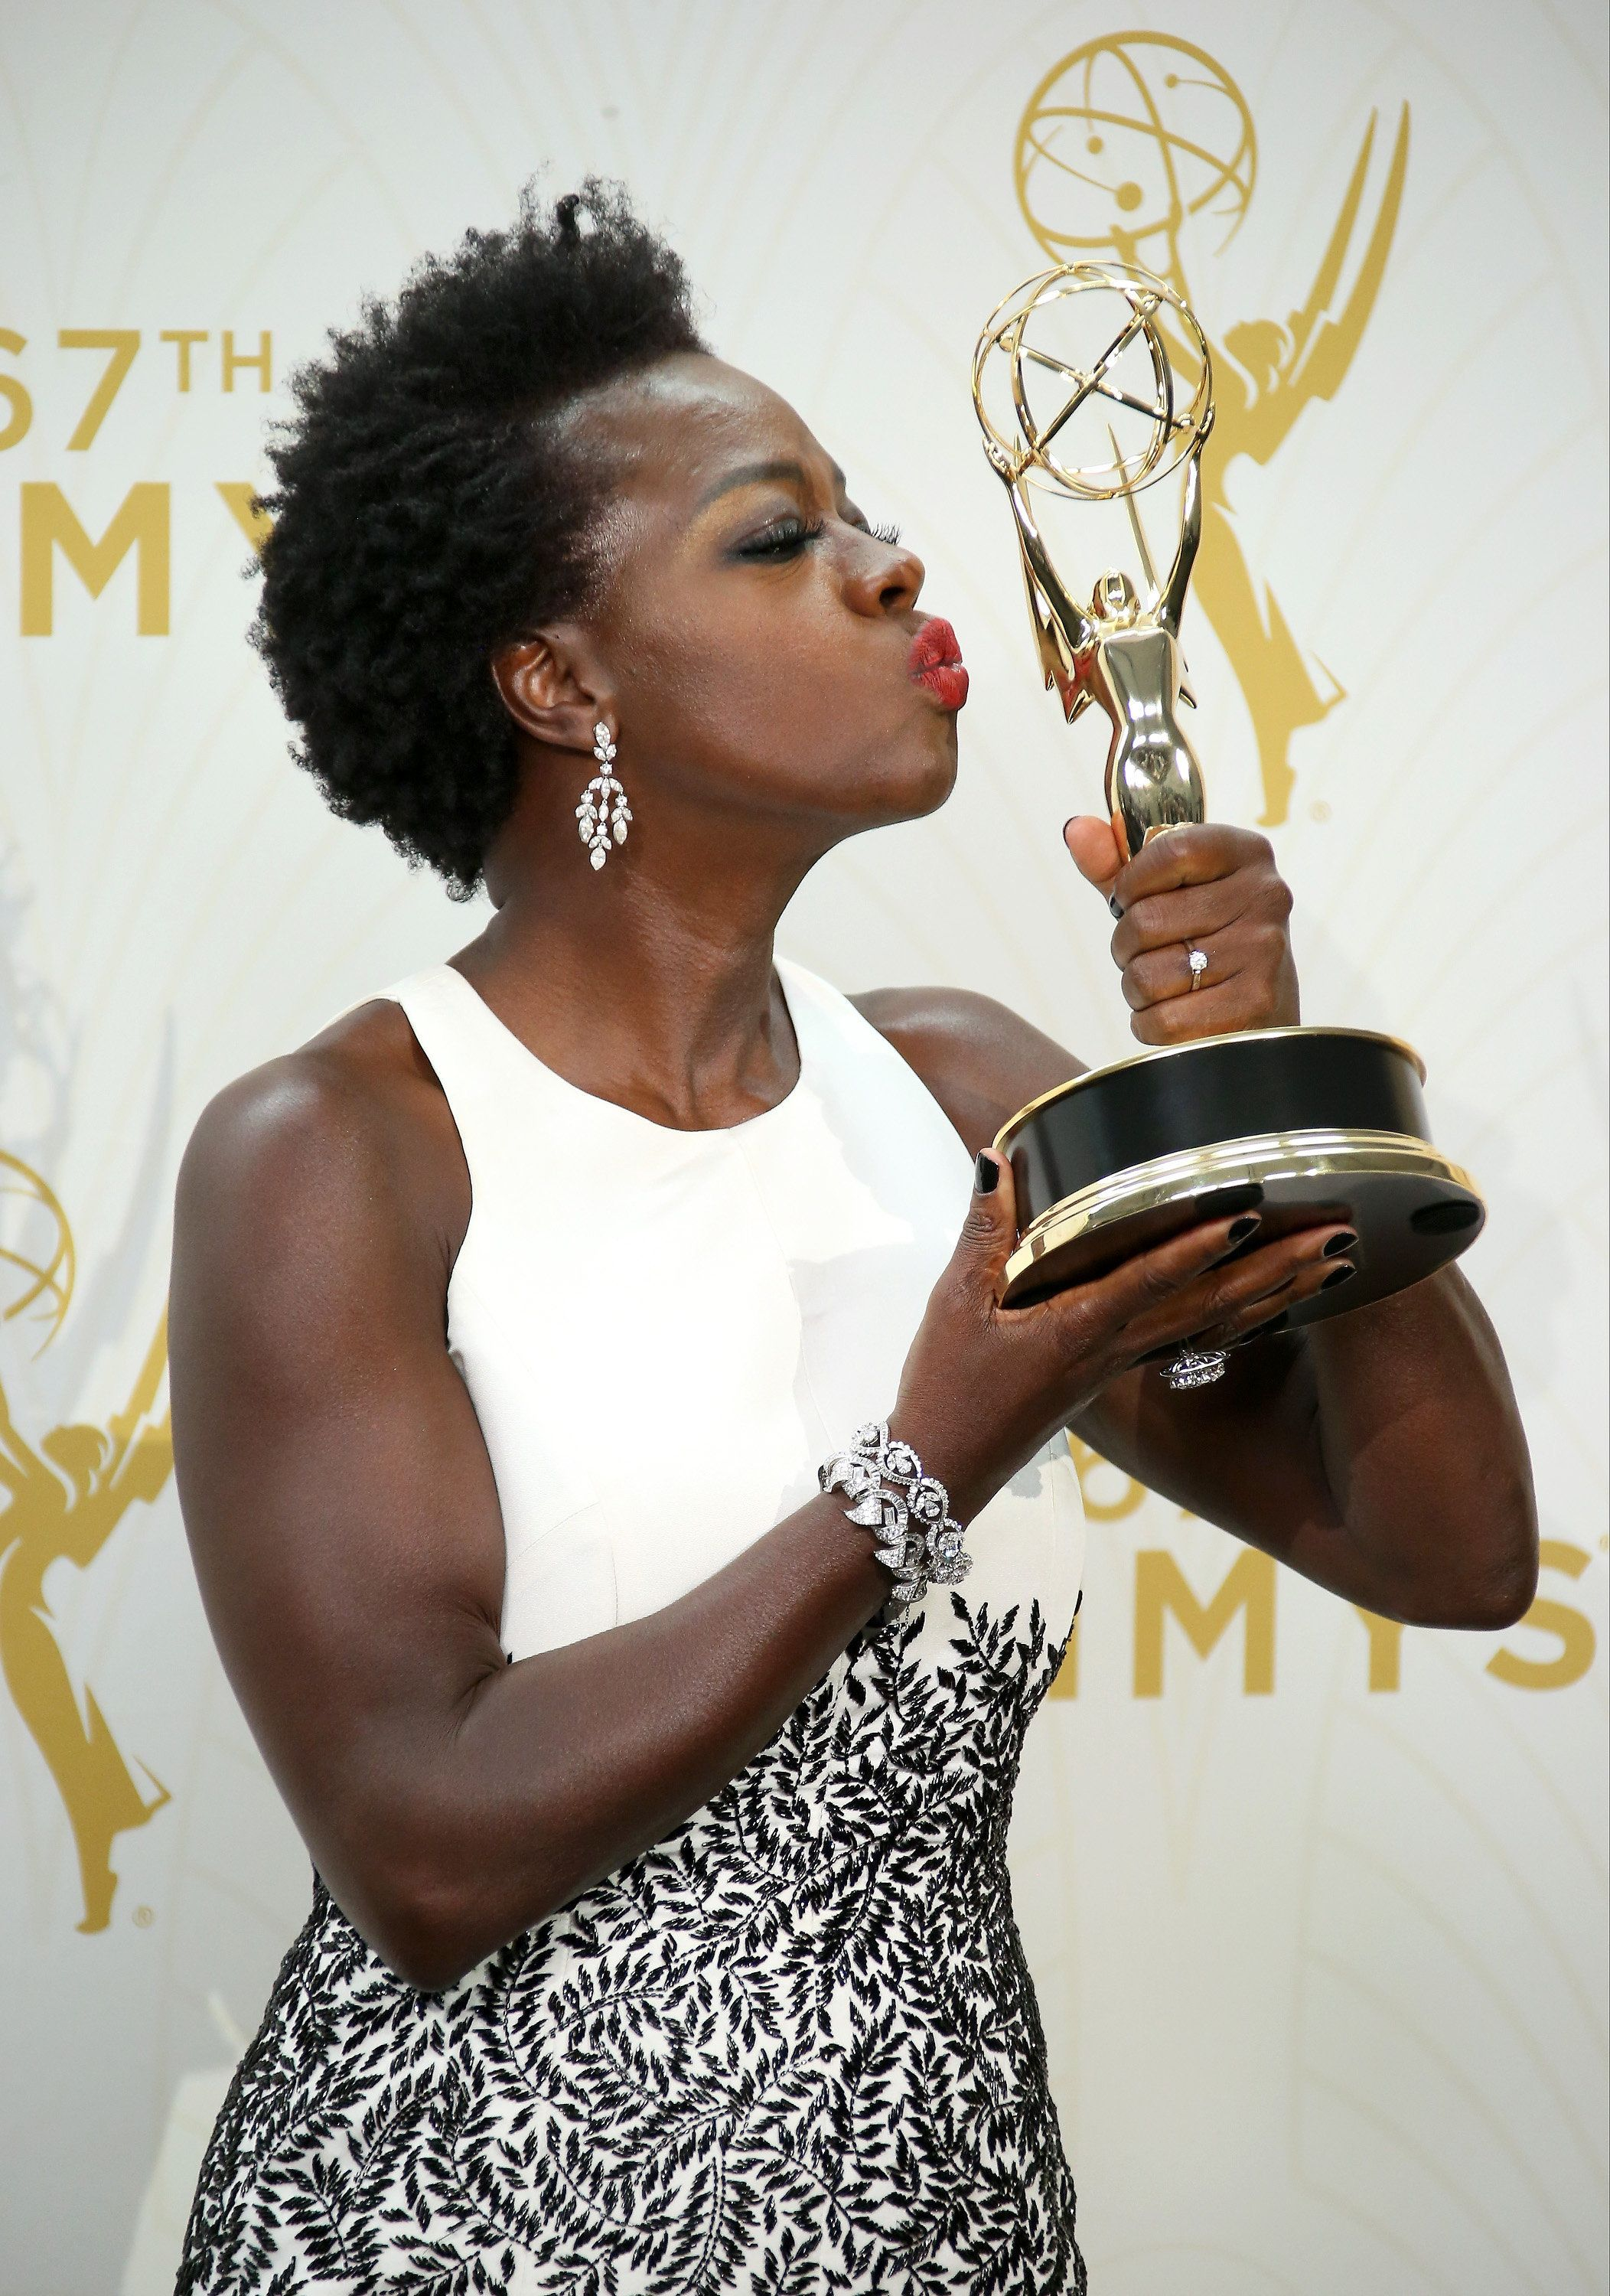 LOS ANGELES, CA - SEPTEMBER 20: Viola Davis poses with her award for Outstanding Lead Actress In A Drama Series in the photo room at the 67th Annual Primetime Emmy Awards at the Microsoft Theater on September 20, 2015 in Los Angeles, California. (Photo by Dan MacMedan/WireImage)